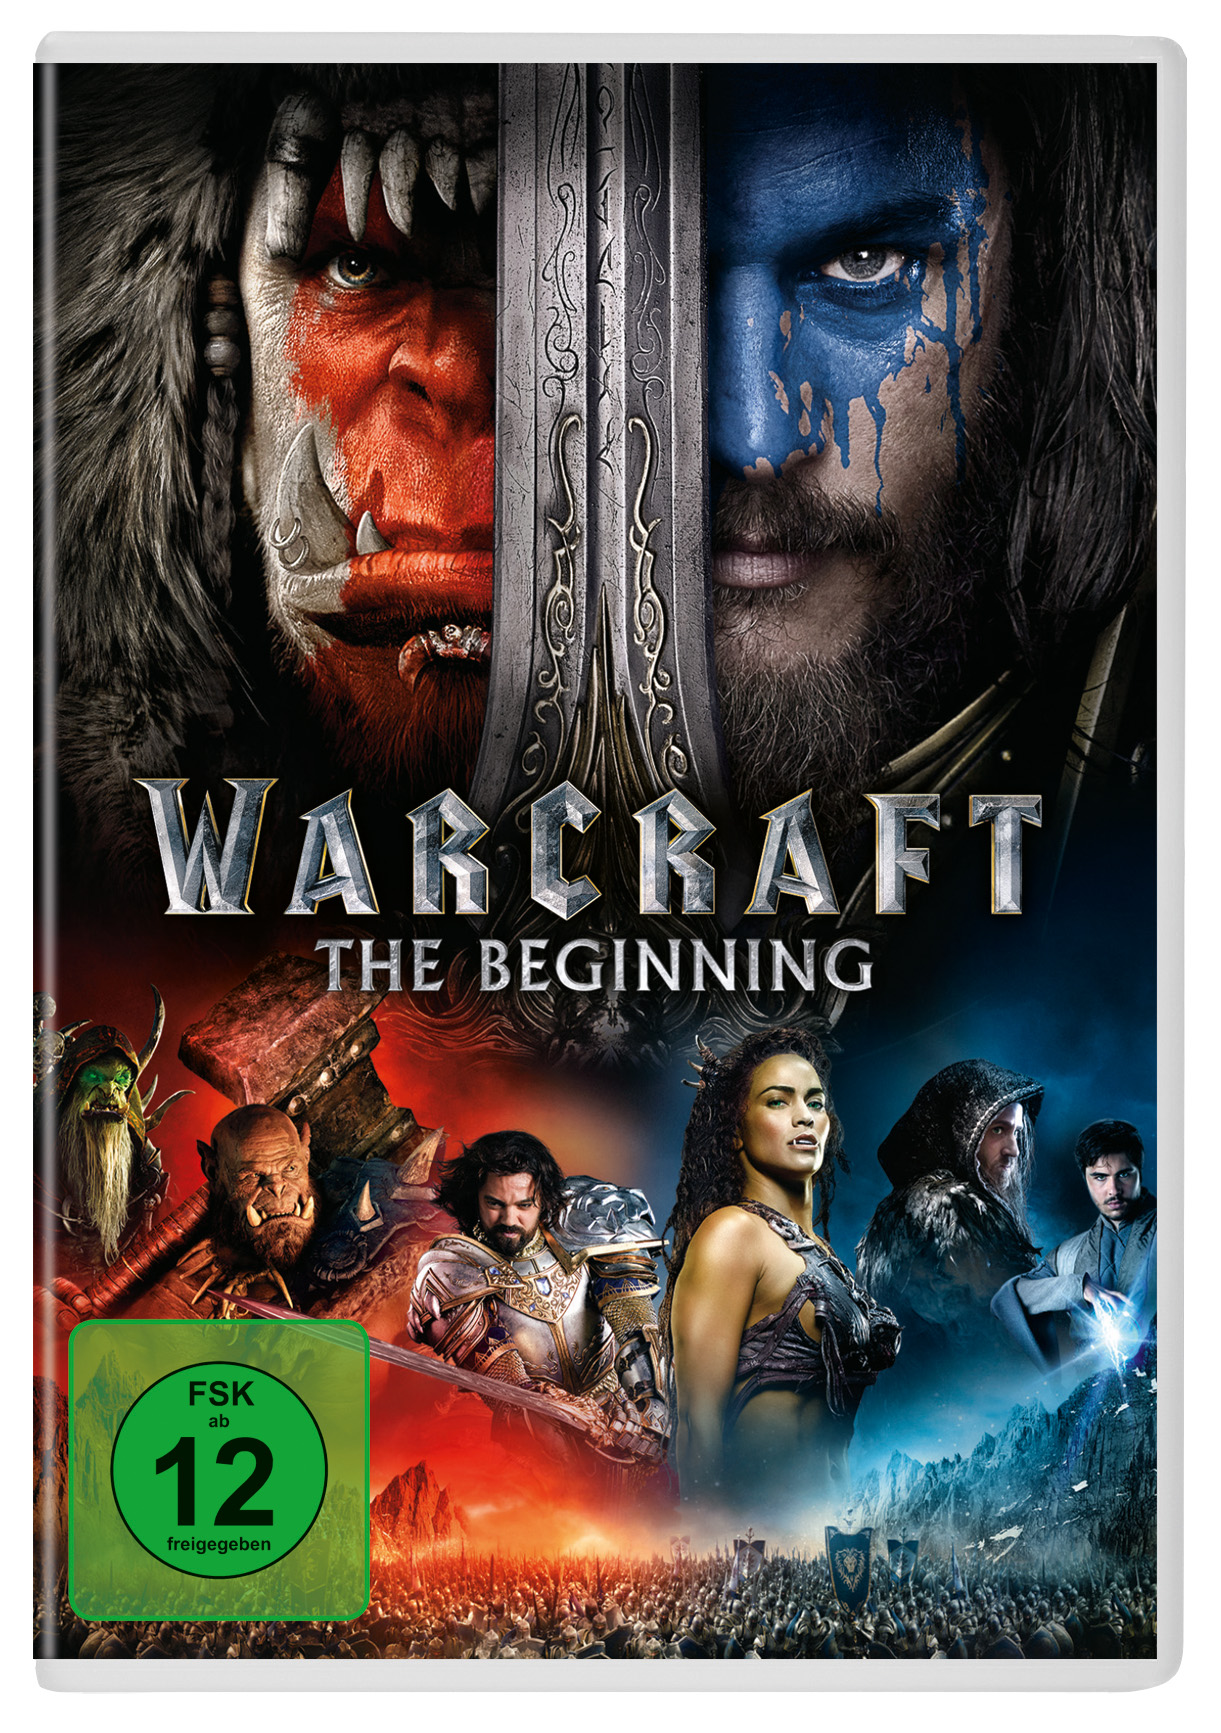 warcraft_beginning_2d_xp_dvd